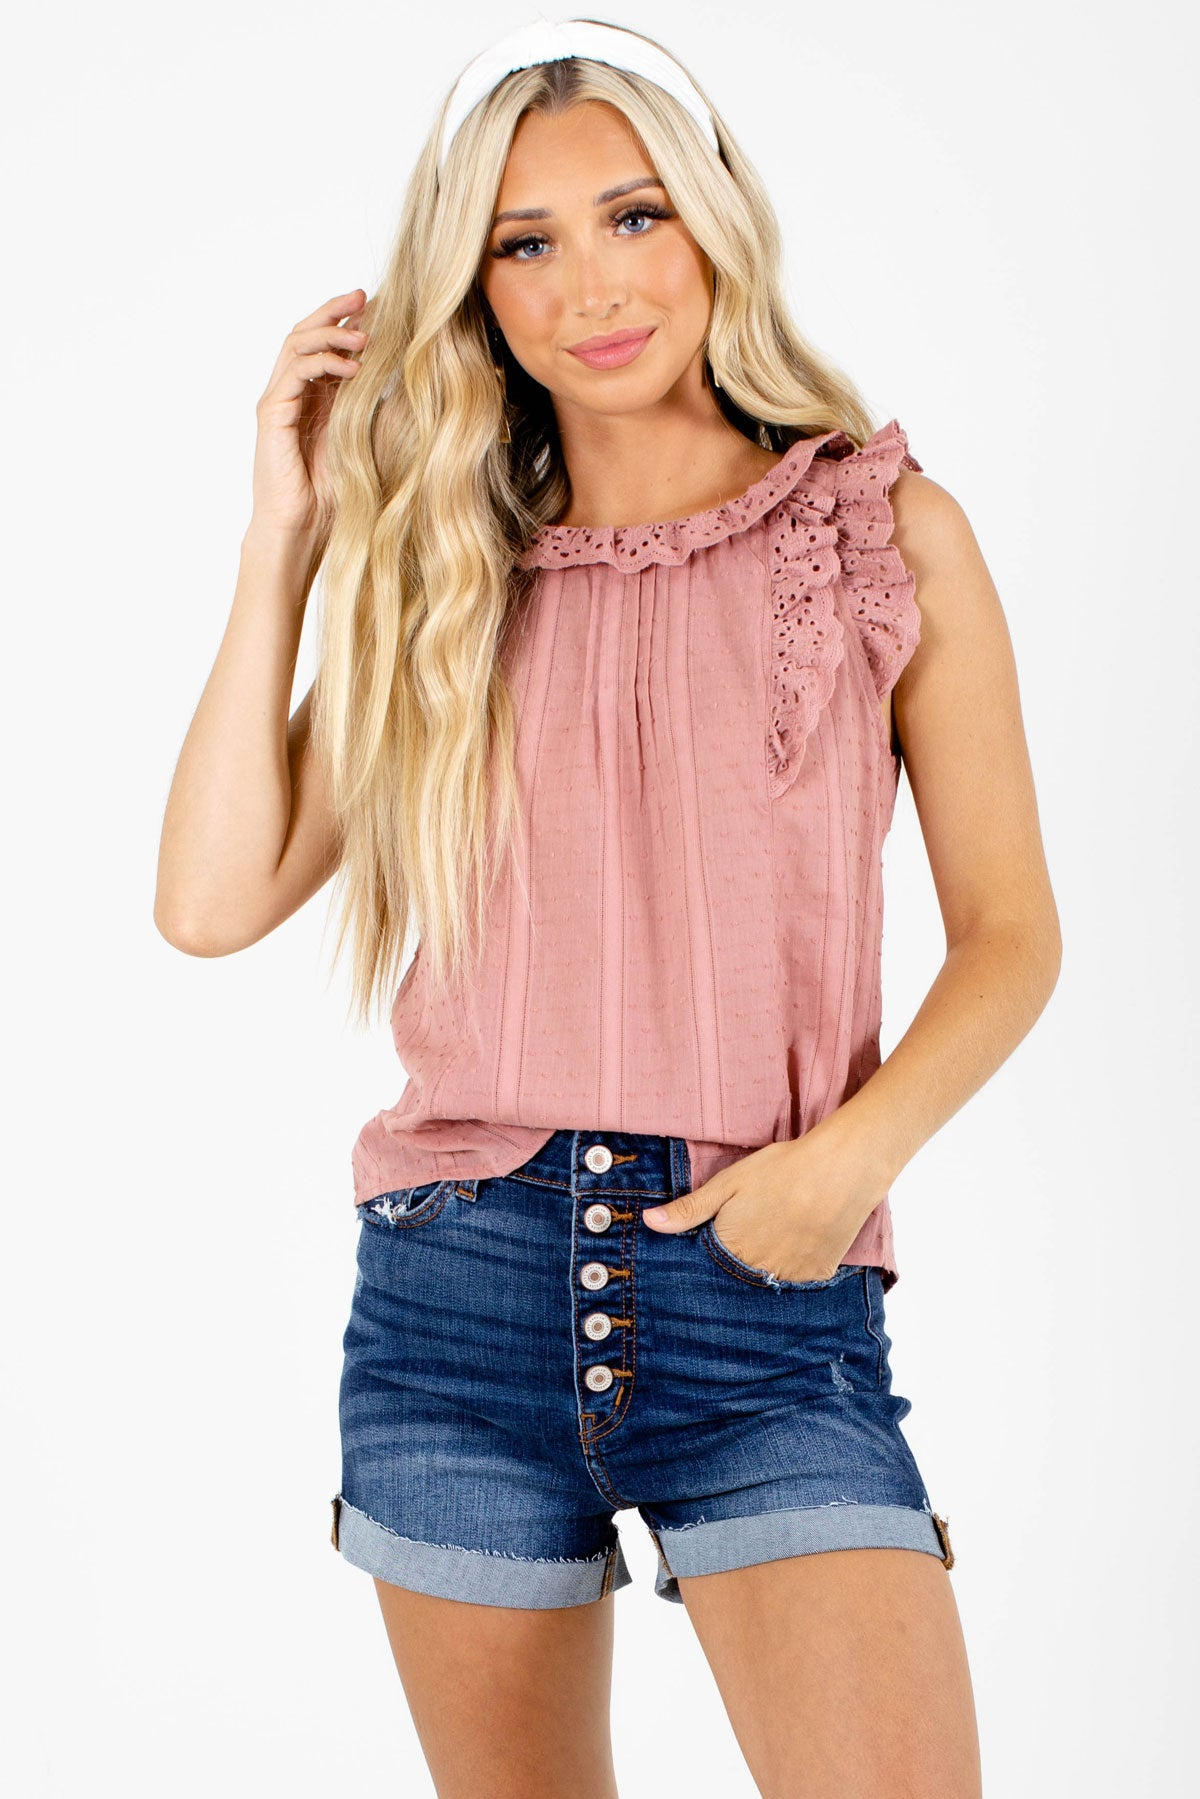 Pink Eyelet Detailed Boutique Tank Tops for Women